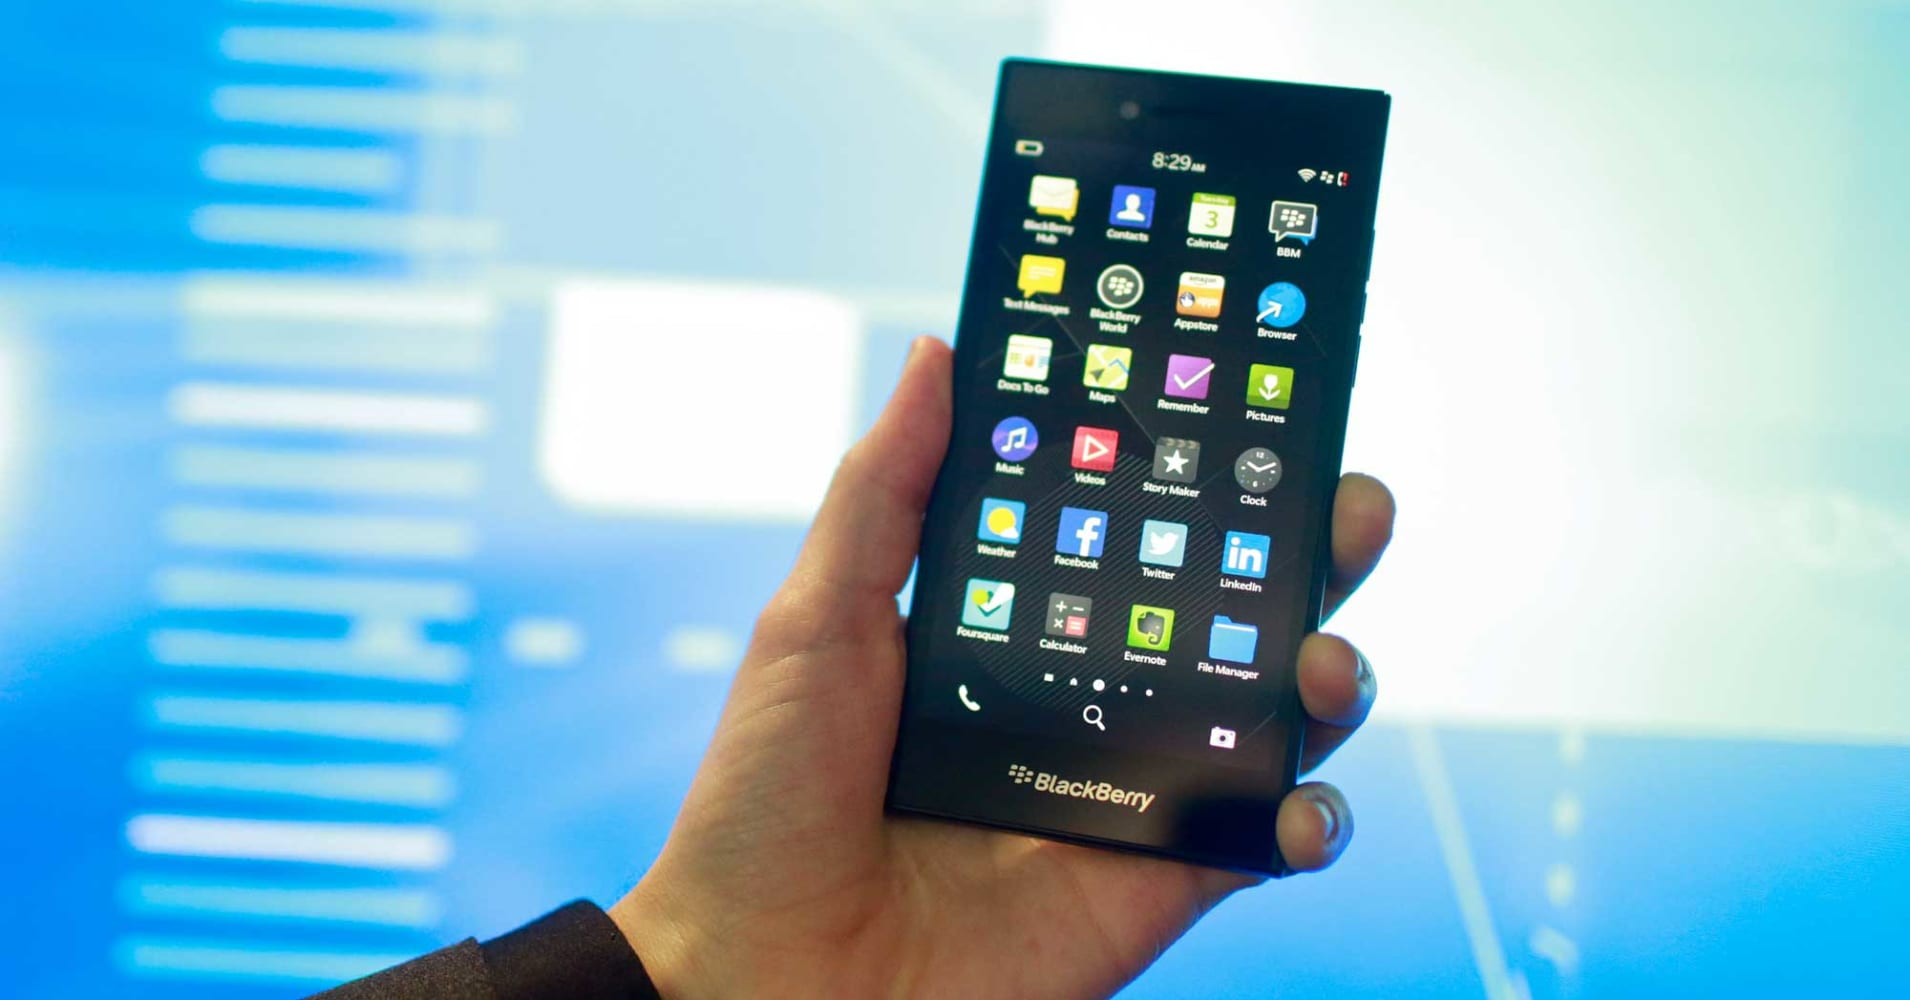 BlackBerry posts loss of 5 cents a share vs. 3 cent loss ...